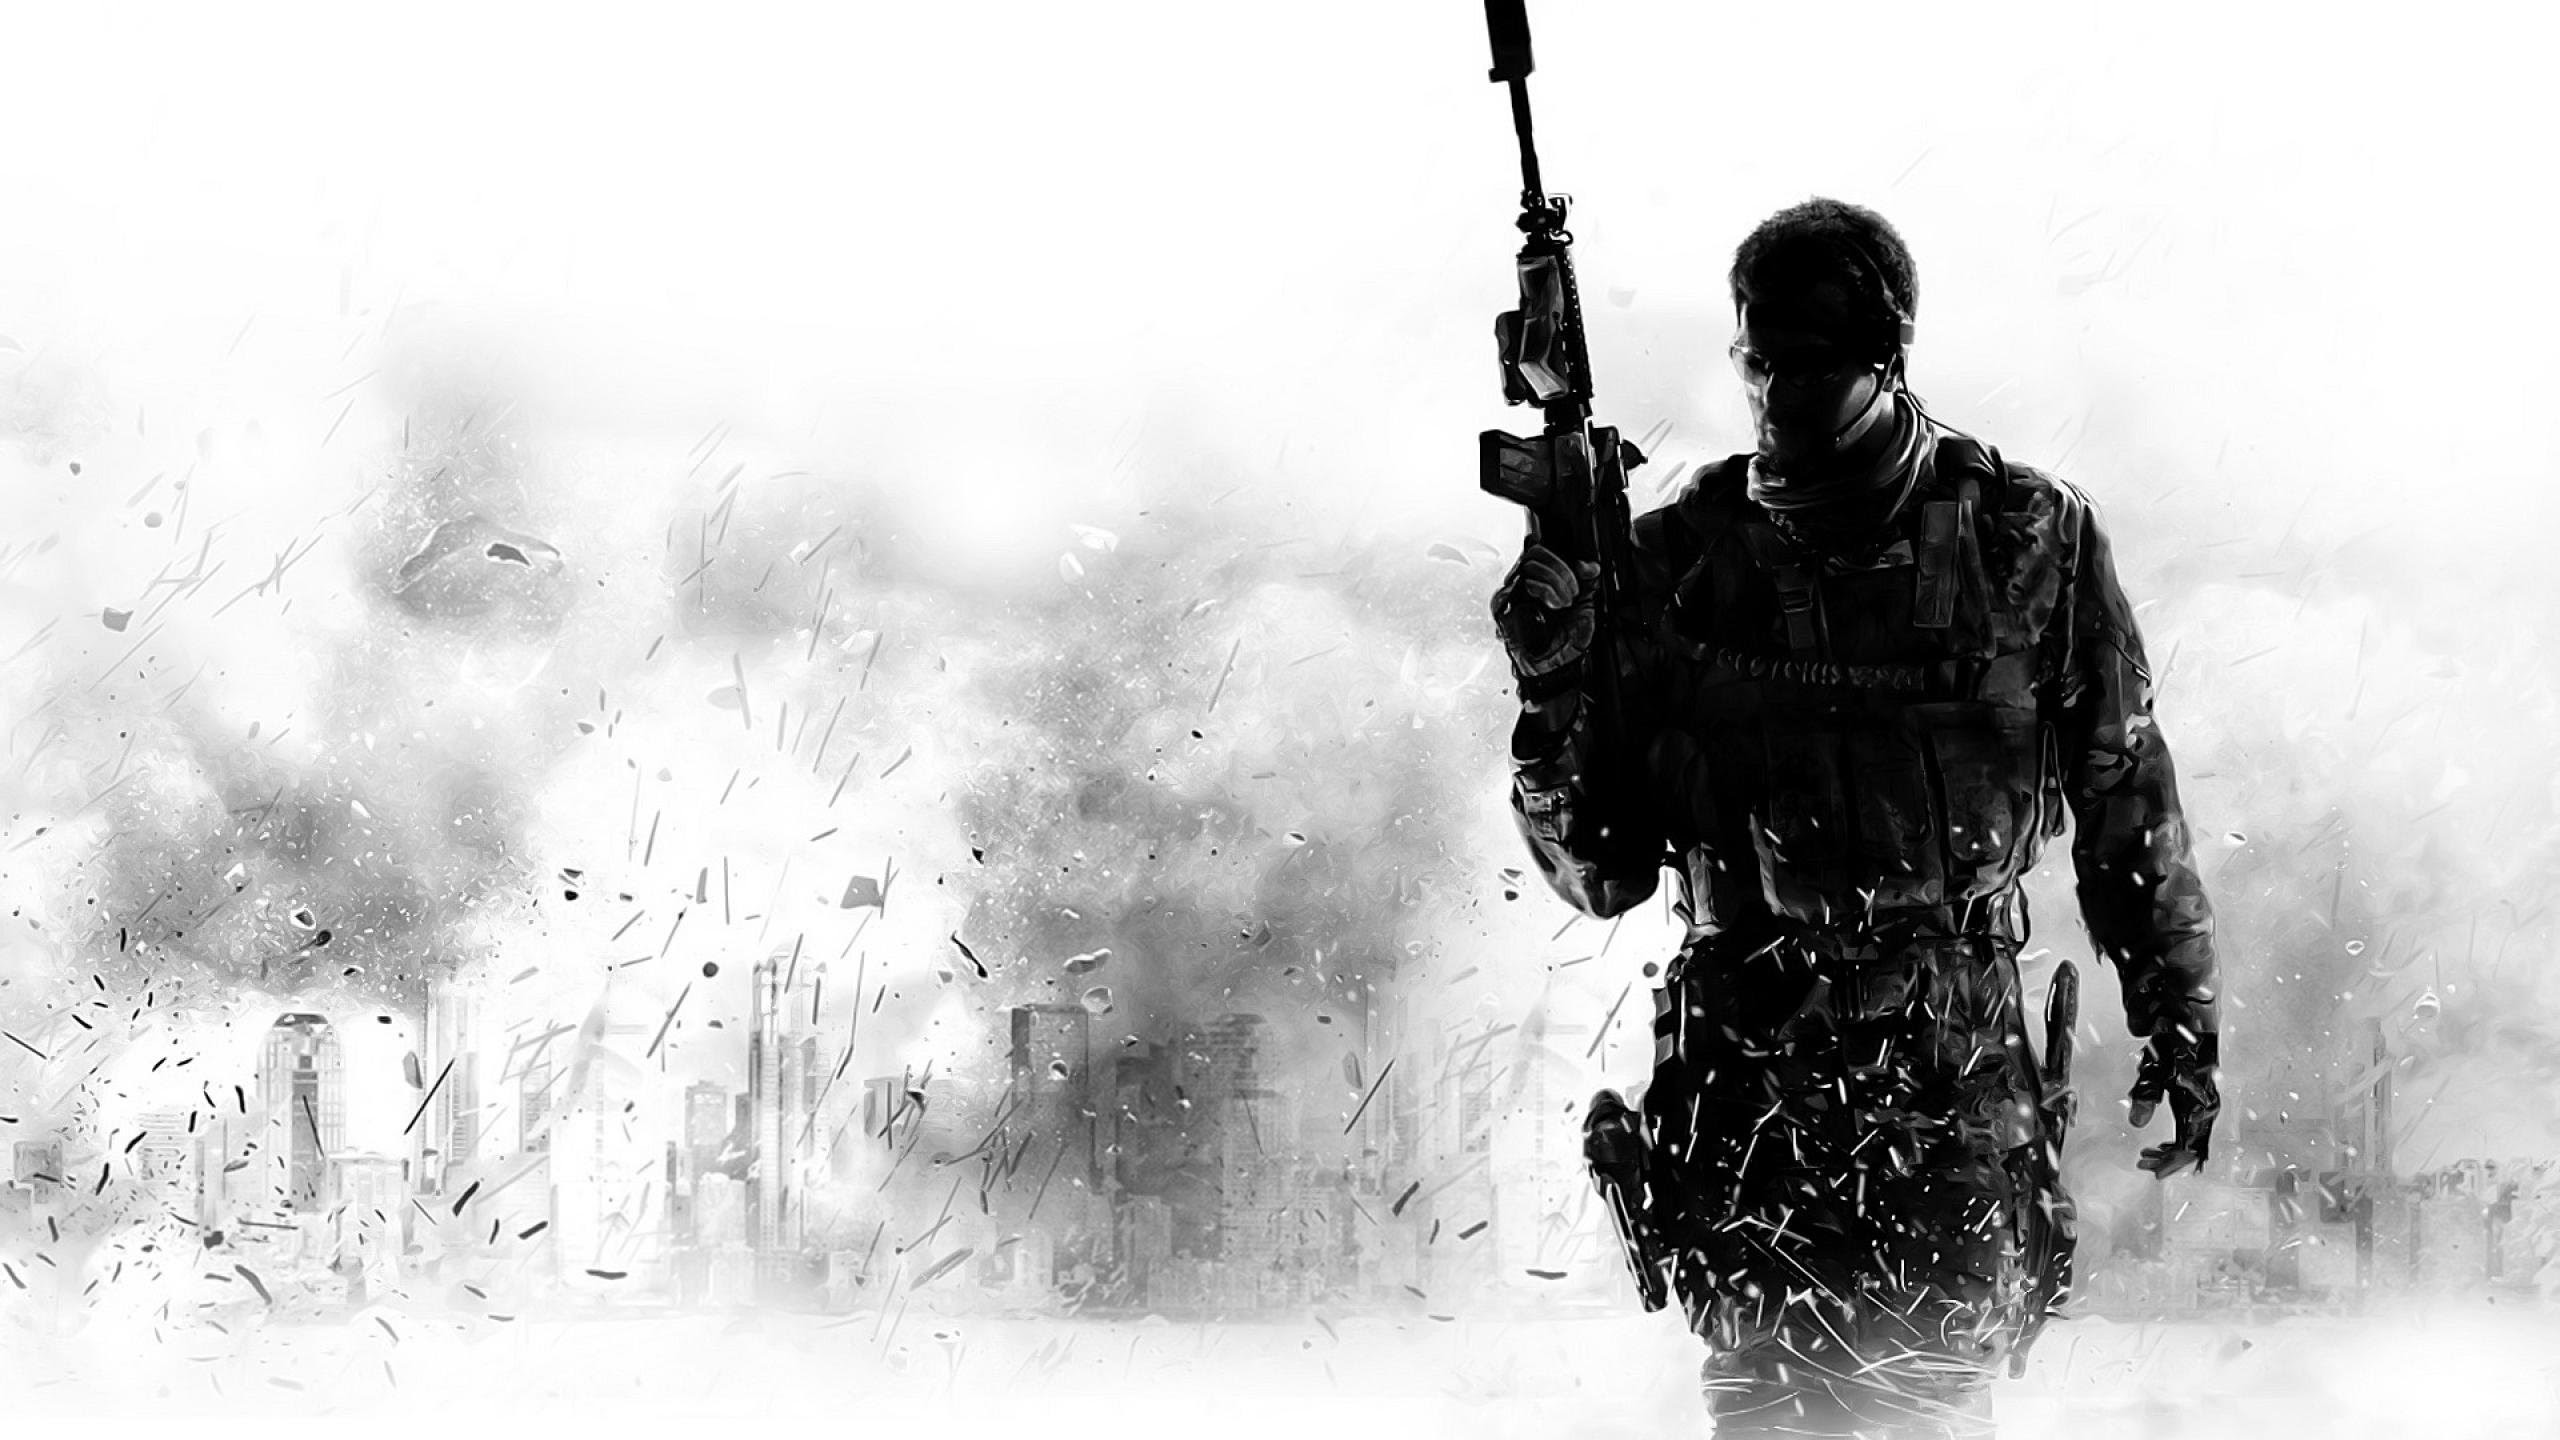 Call Of Duty Modern Warfare Wallpaper Game Wallpapers 2560x1440